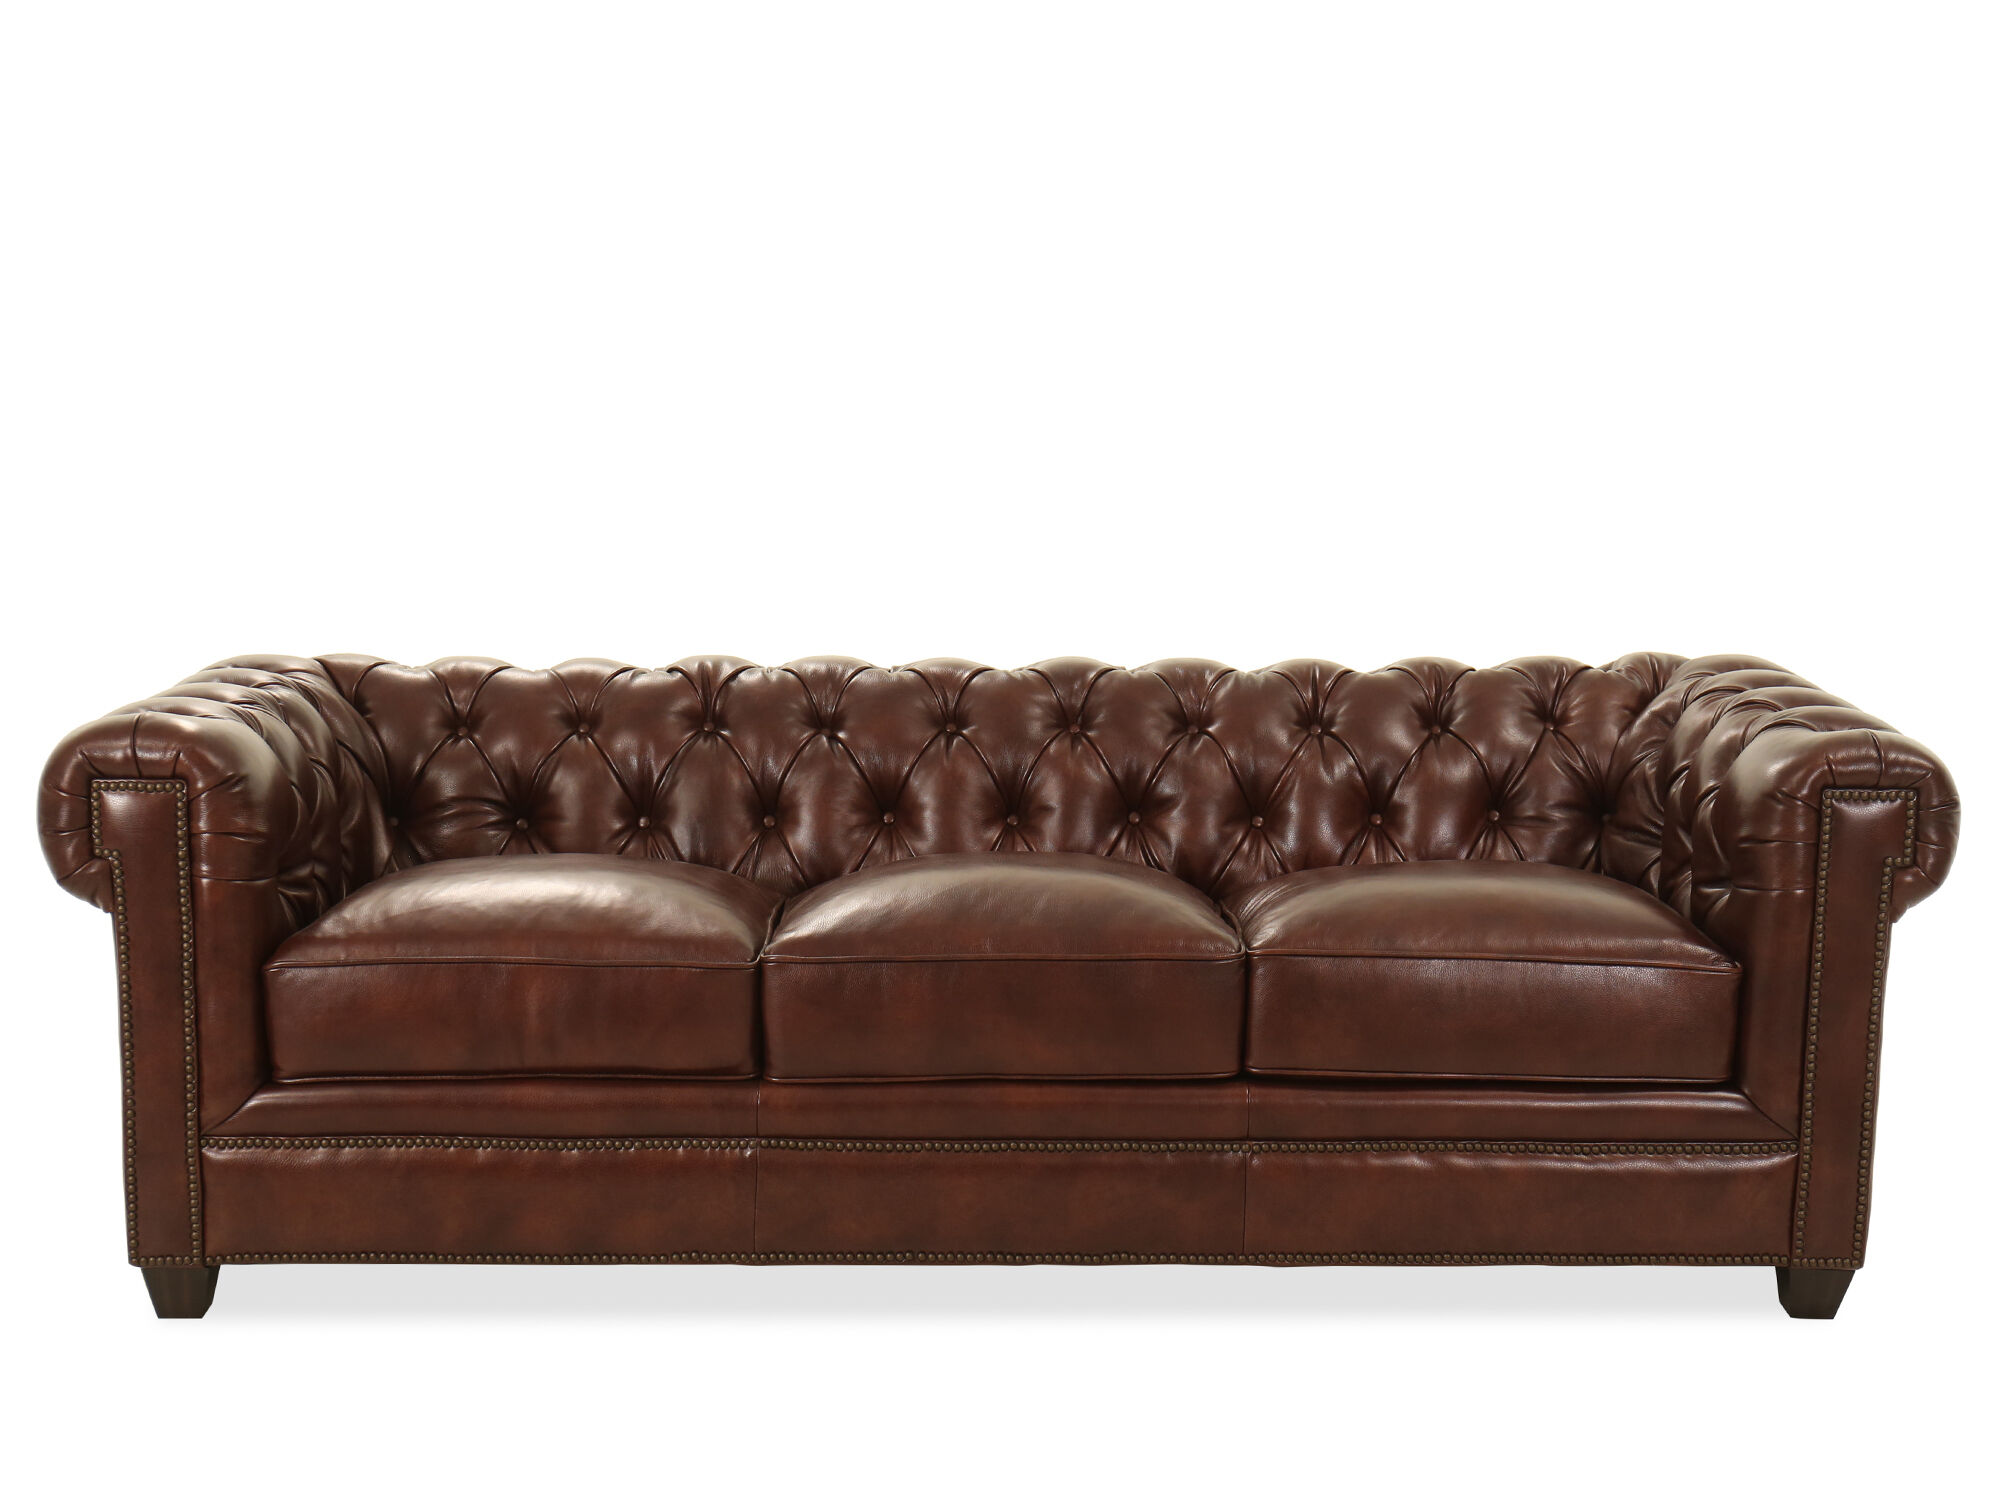 94 Quot Tufted Leather Chesterfield Sofa In Milano Fudge